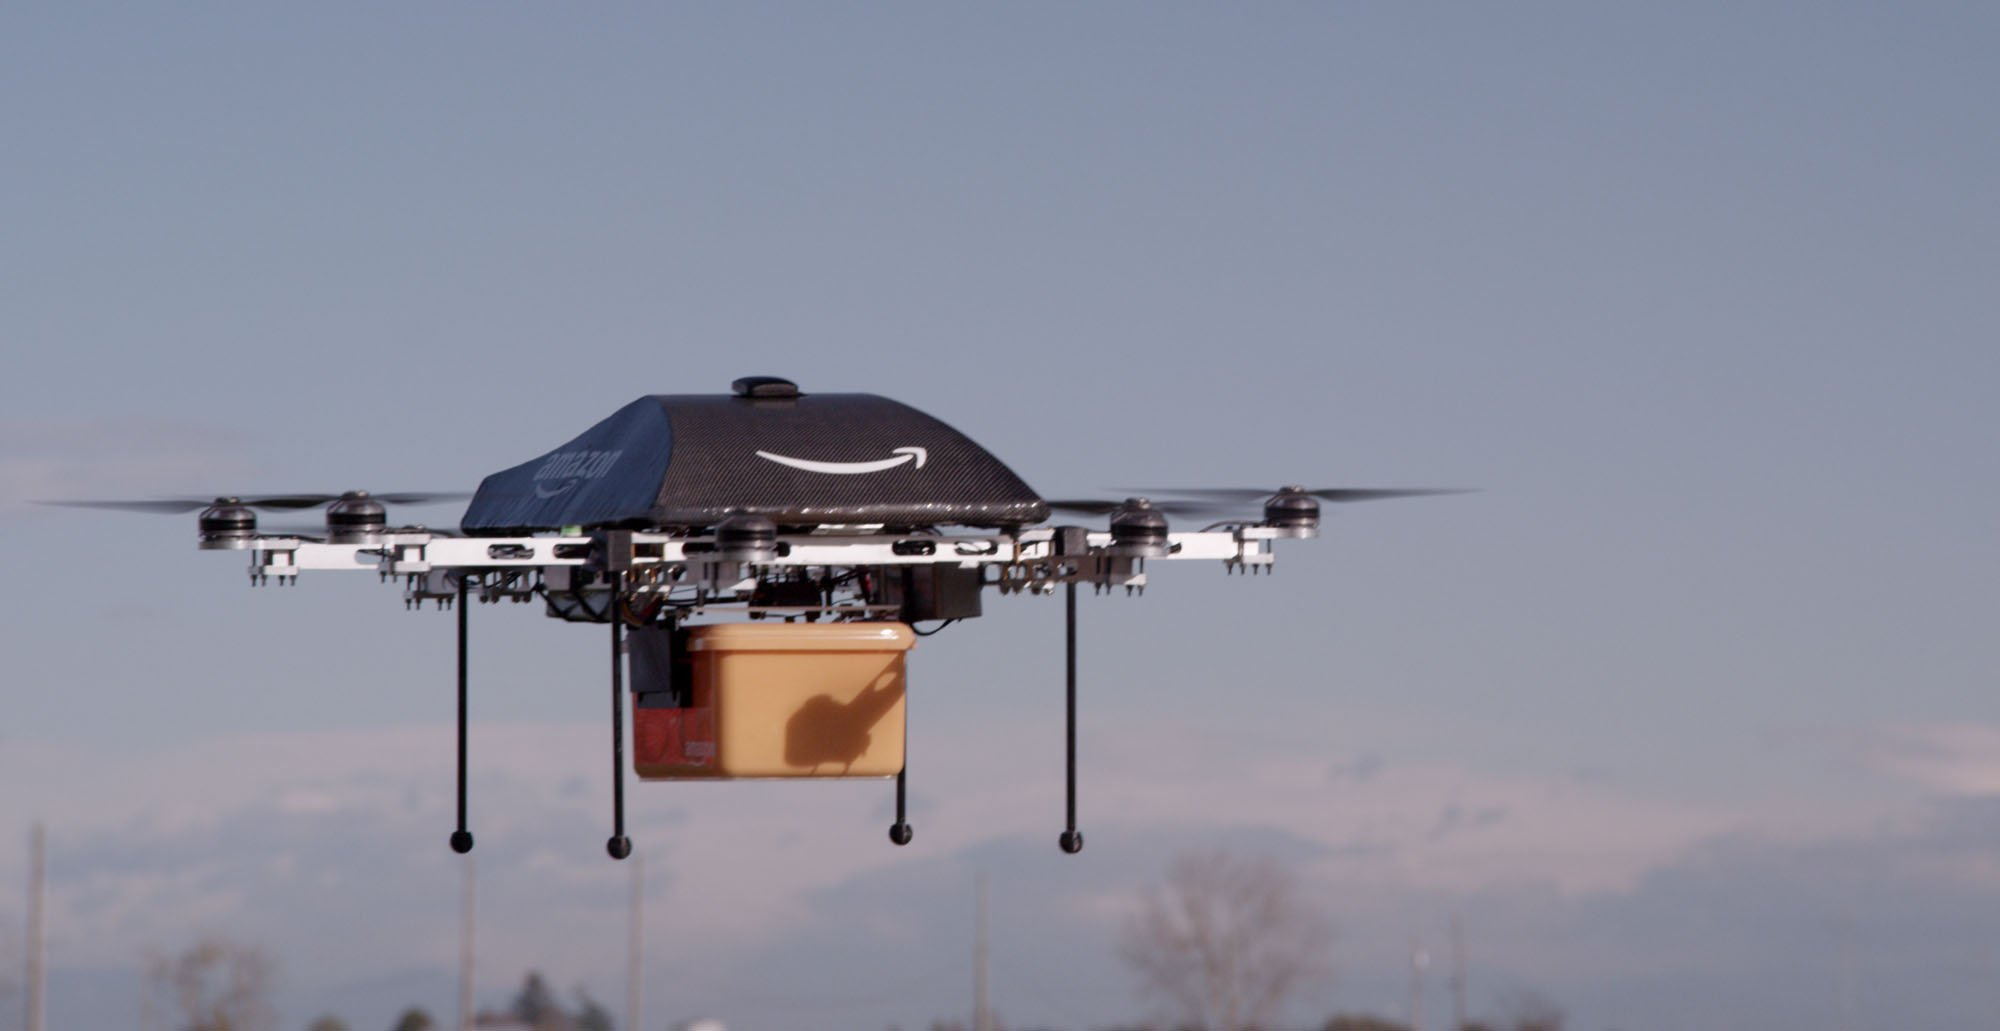 Amazone Prime Air Delivery